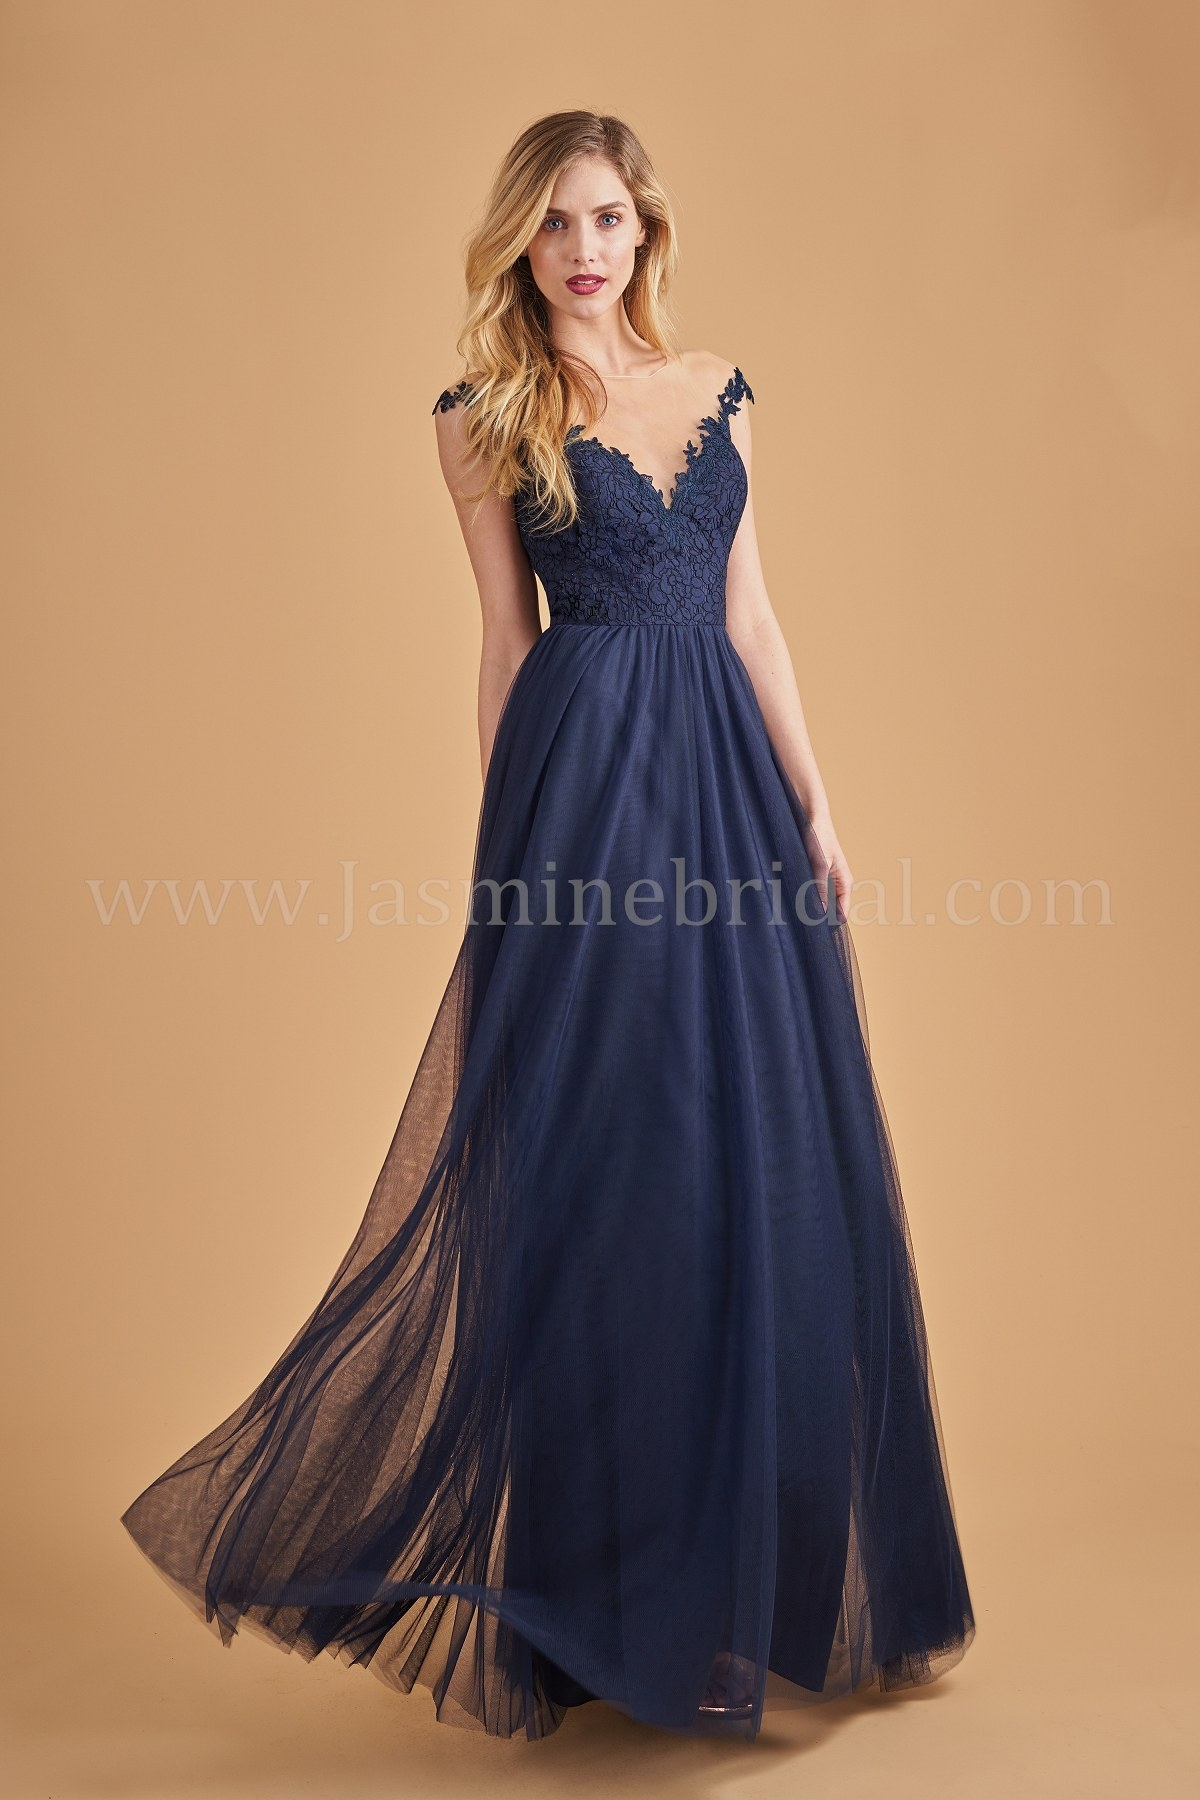 bridesmaid-dresses-Belsoie1